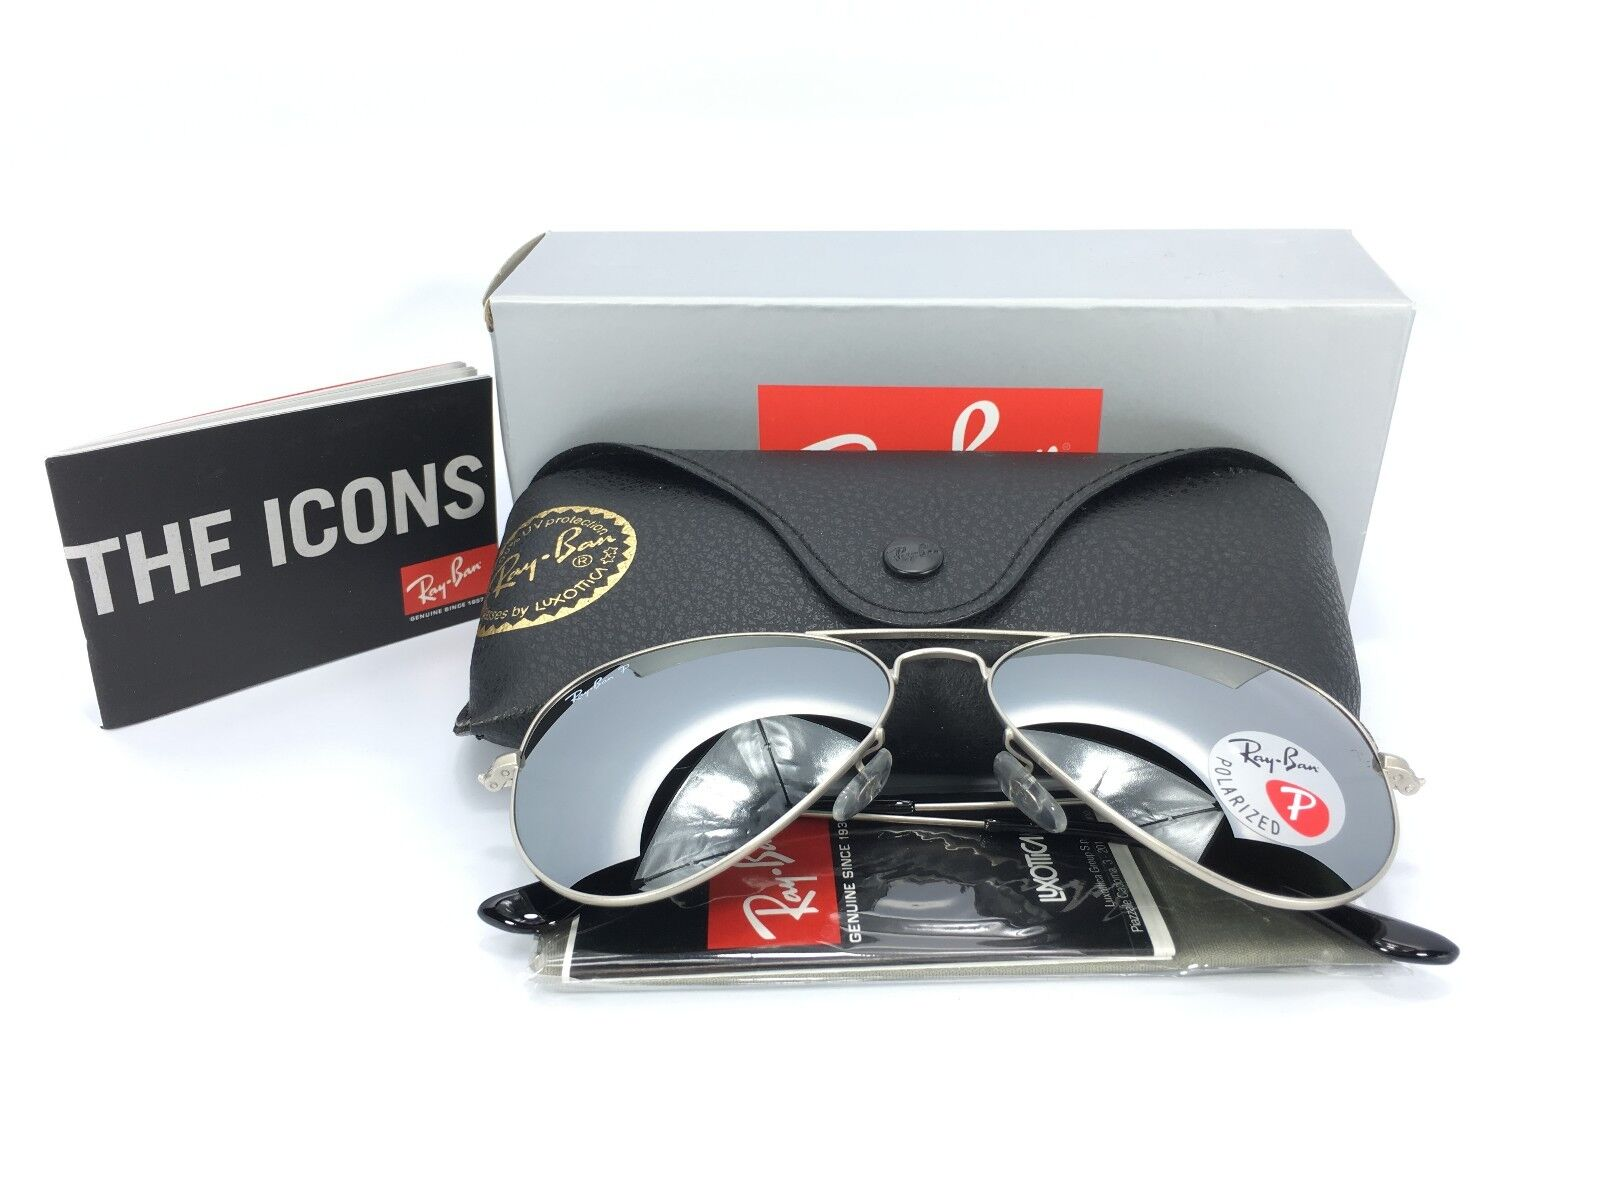 Details about Ray Ban RB3025 019W3 Polarized Silver Aviator Mirror Sunglasses